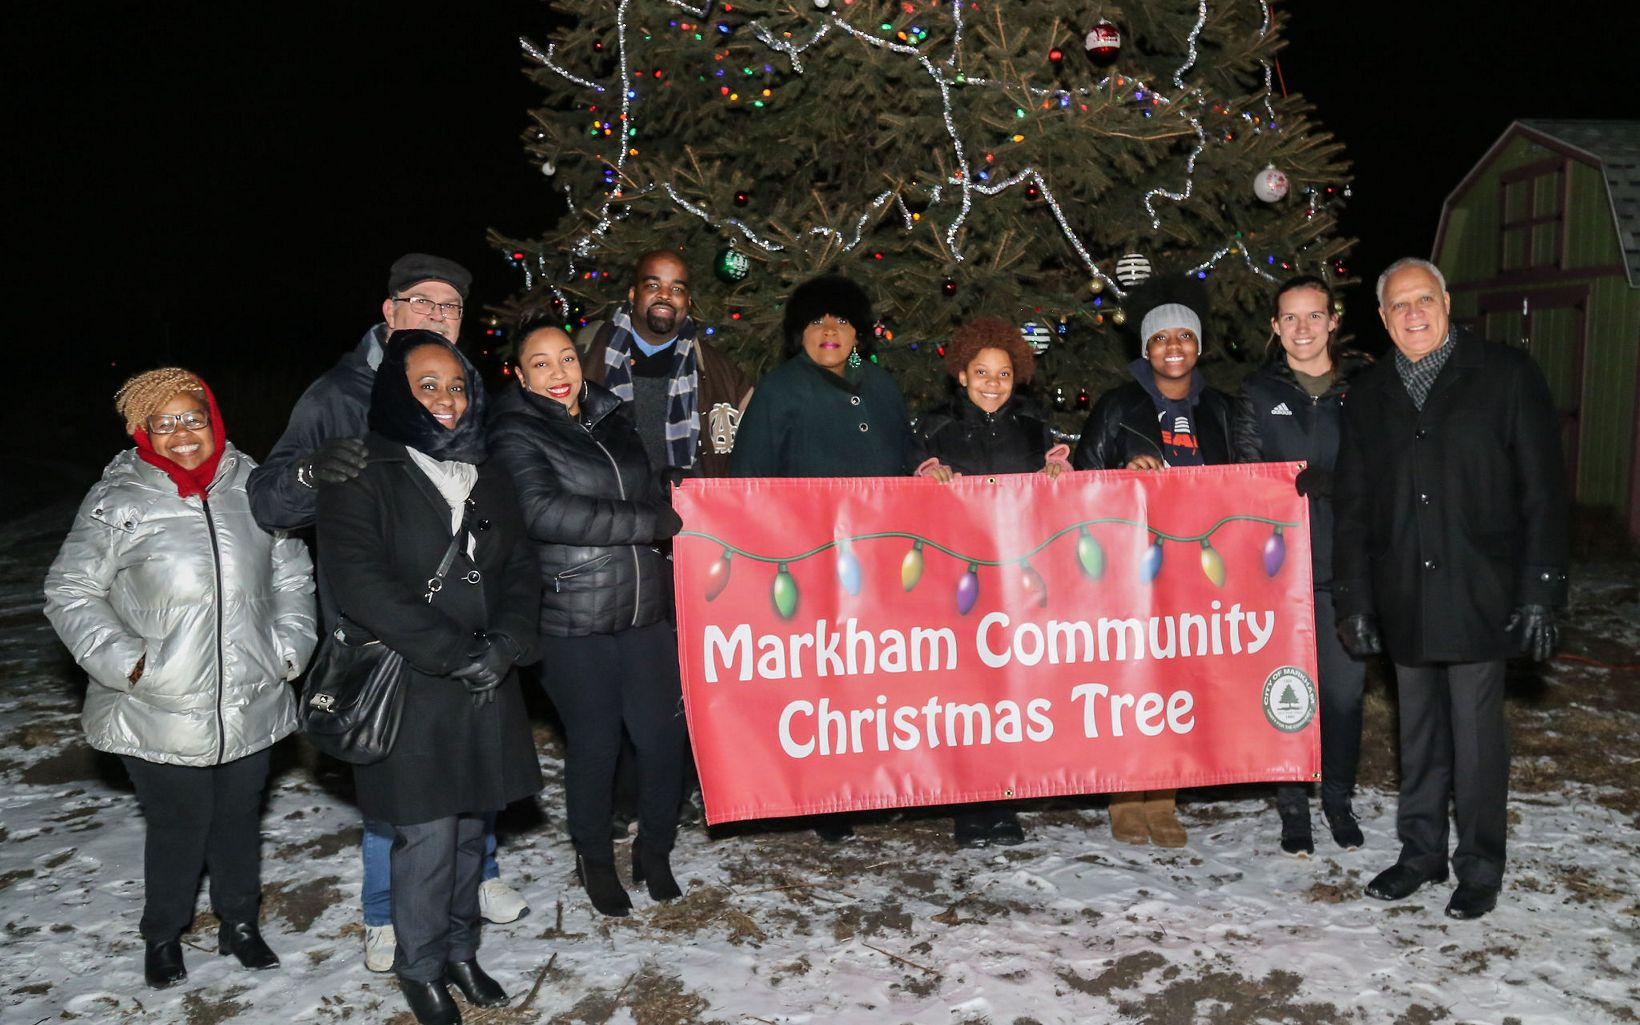 Markham Community Christmas Tree Lighting